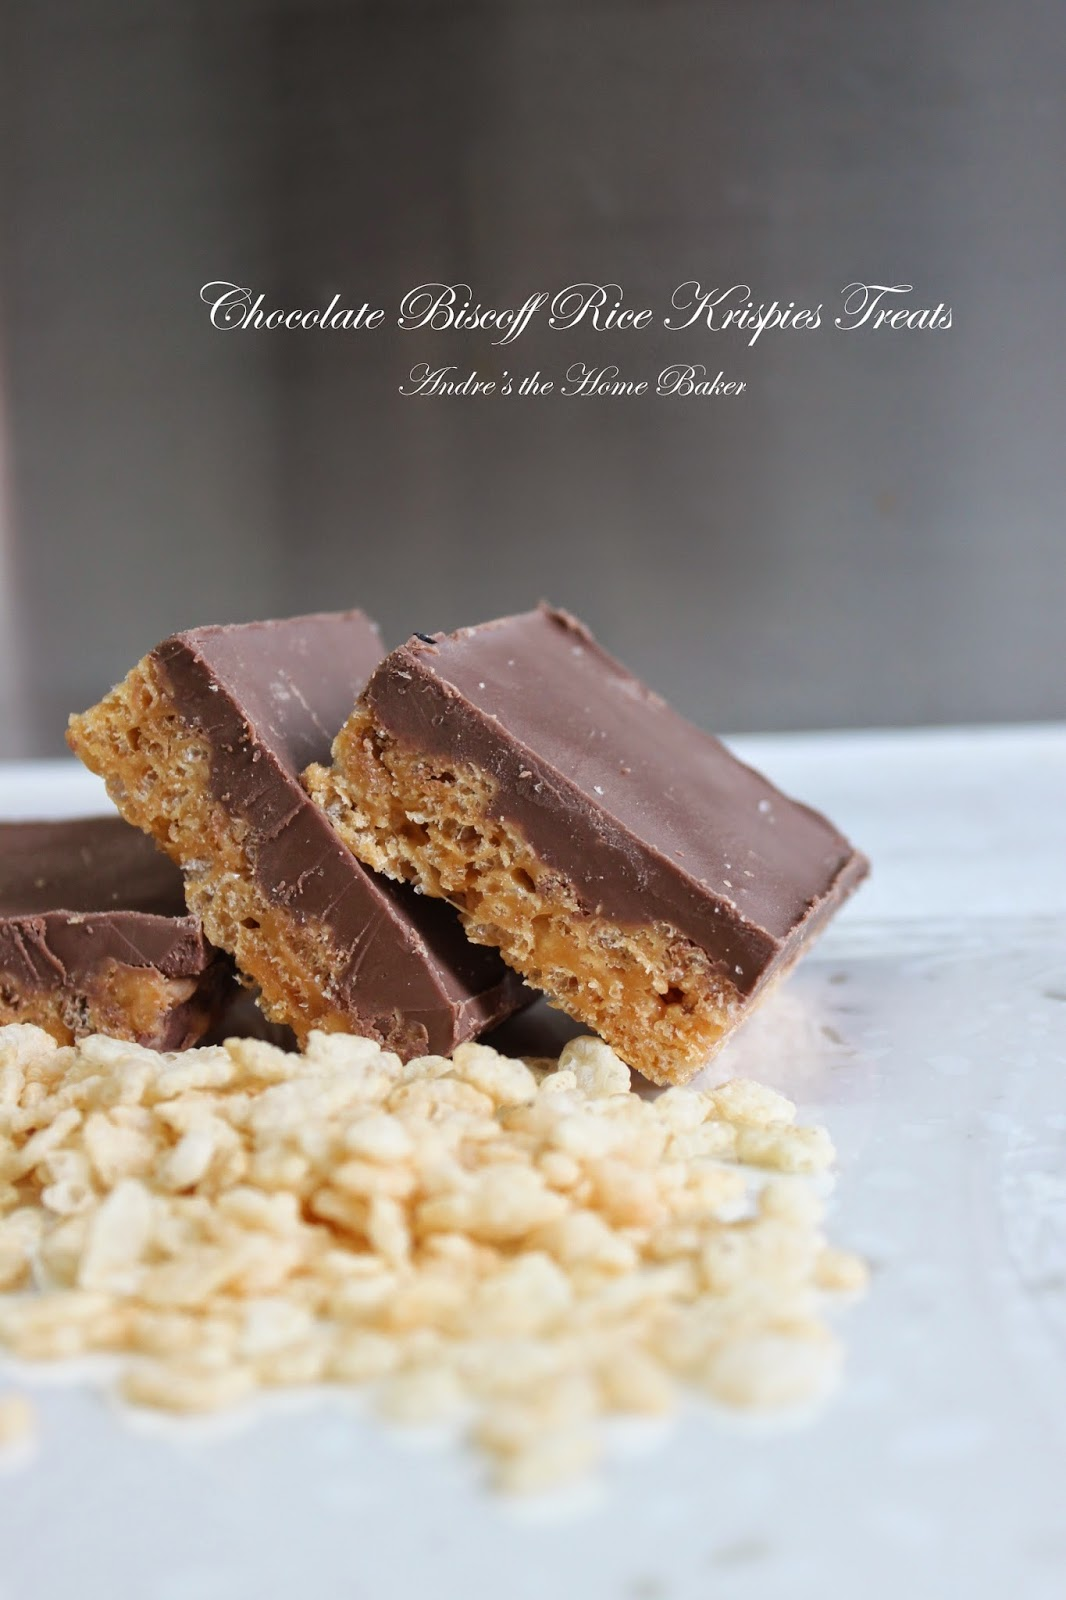 Andre's the Home Baker: ♥ Chocolate Biscoff Rice Krispies Treats ♥